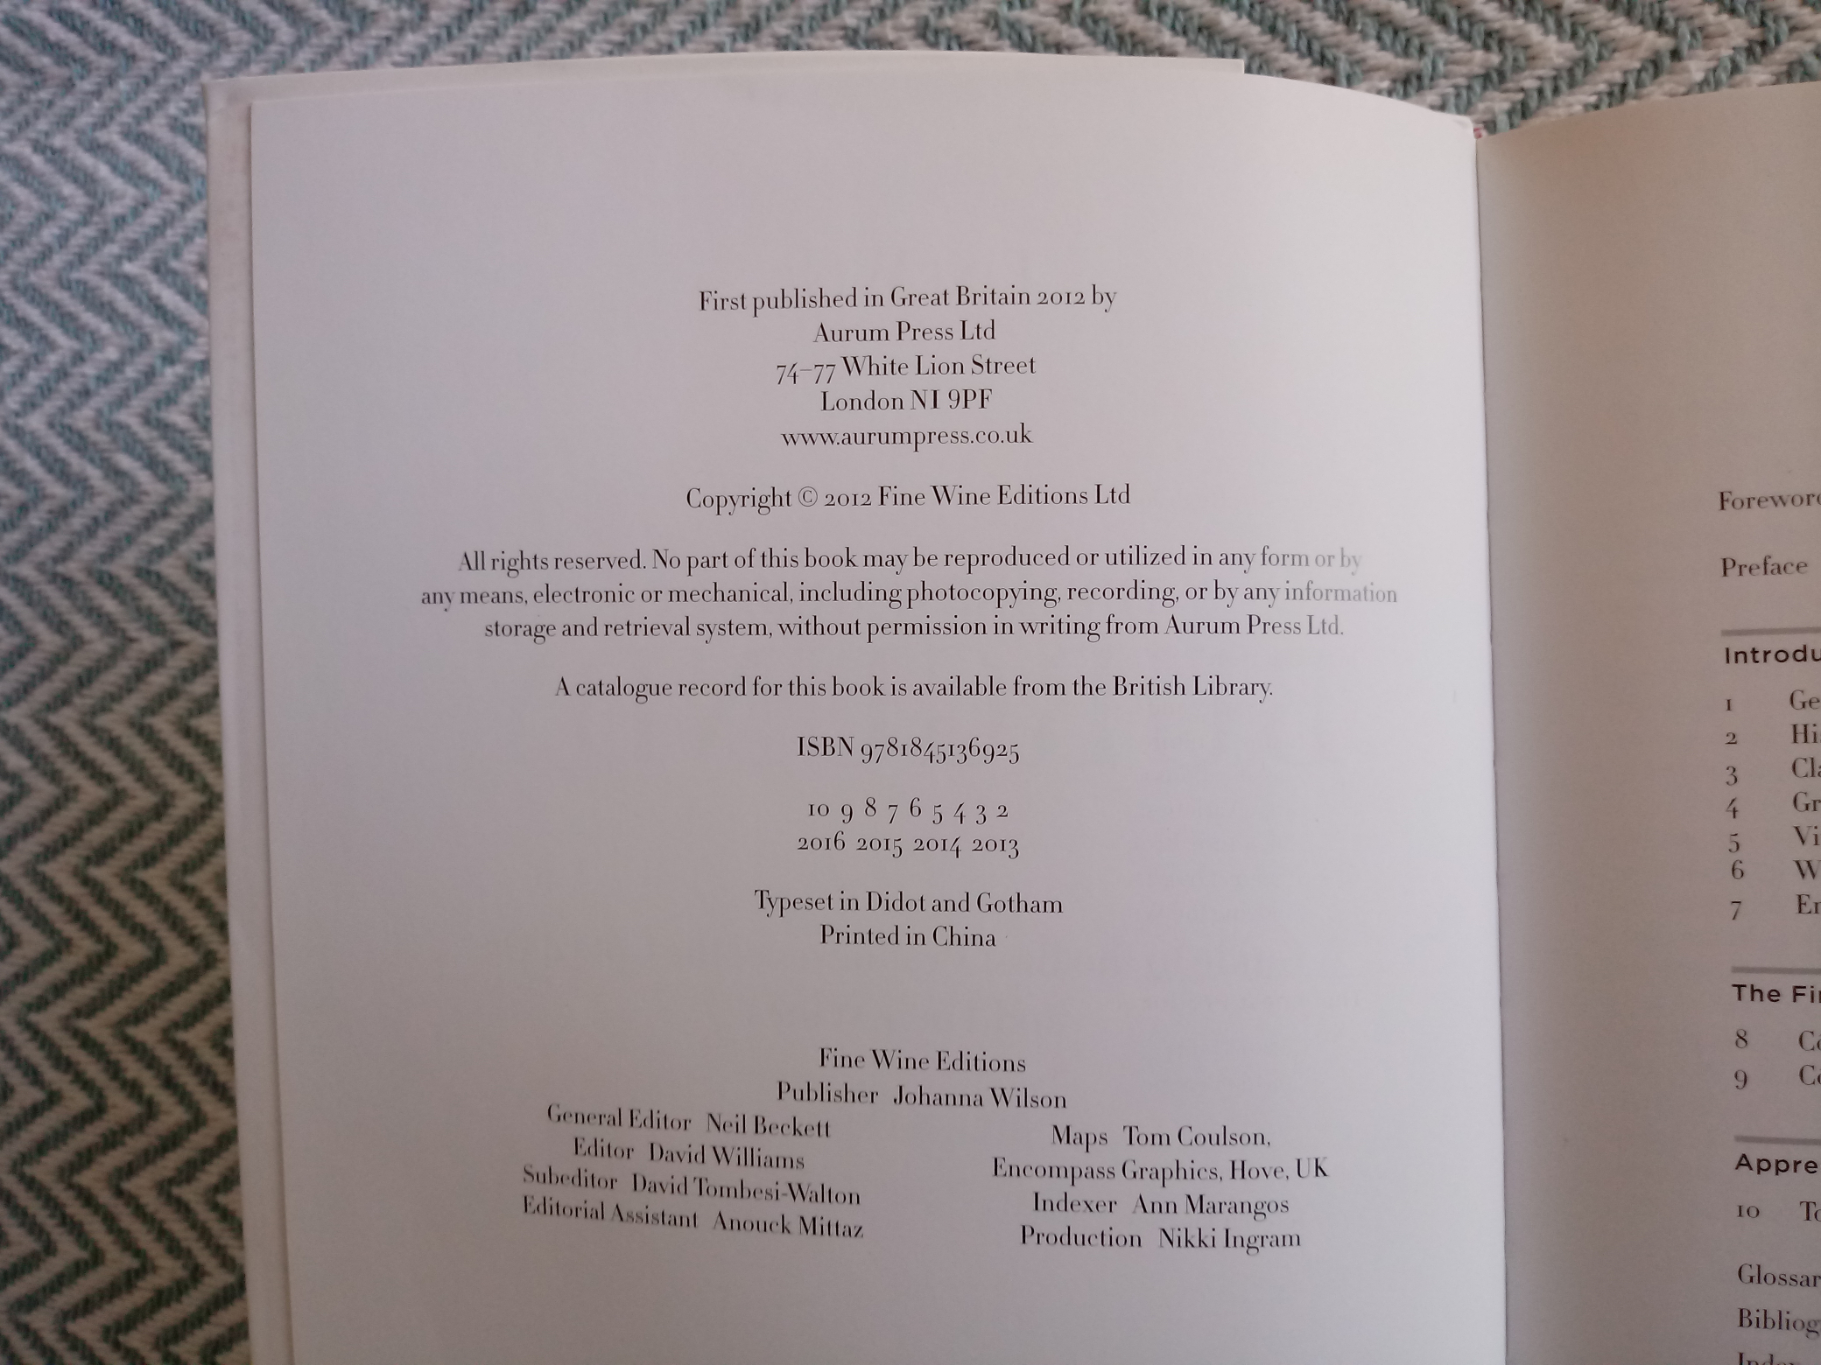 The Finest Wines of Burgundy by Bill Nanson softback book 320 pages inscribed on first page - Image 4 of 4